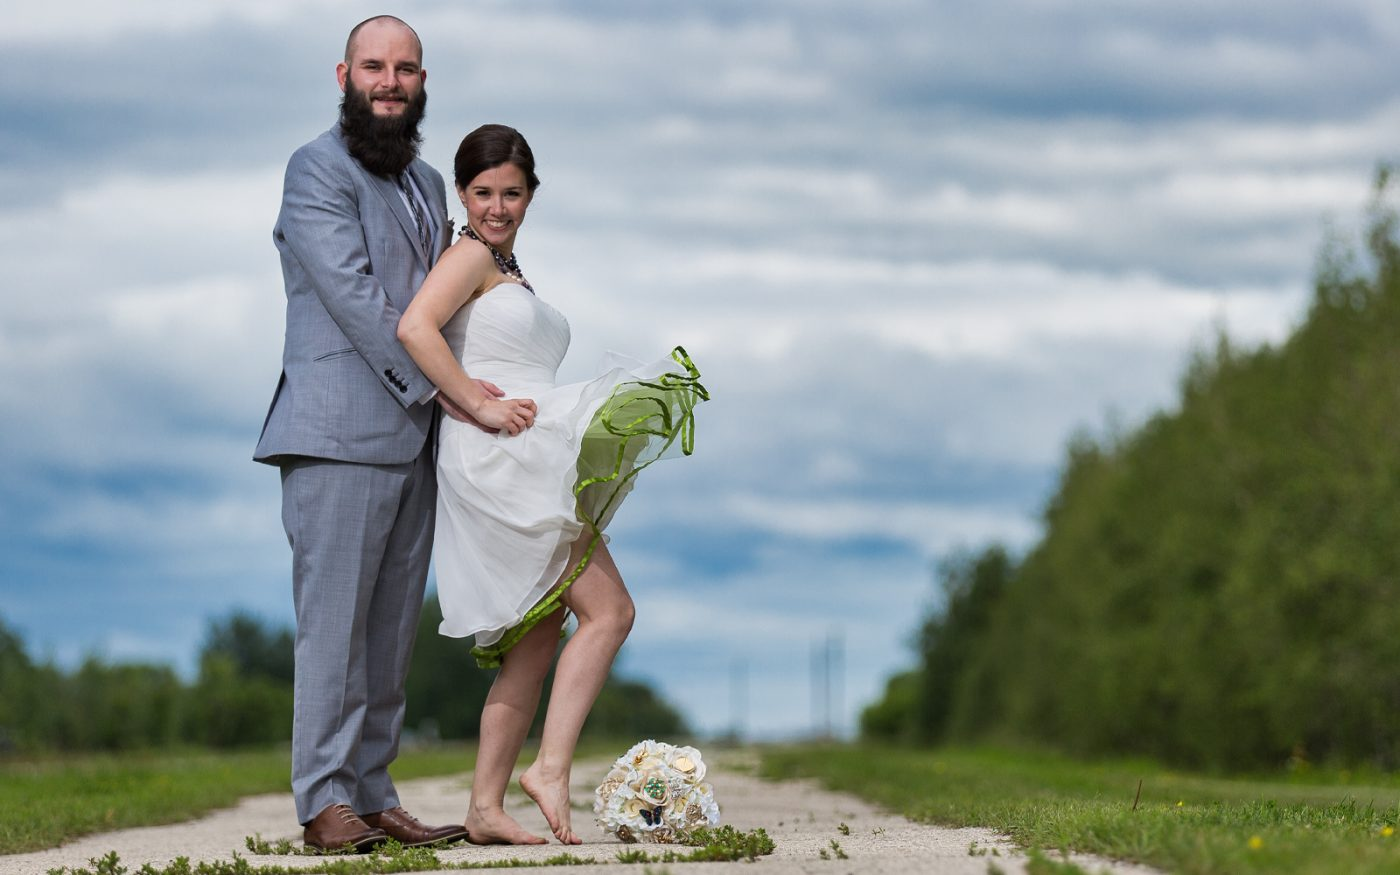 Sam and David kick off their shoes and have fun during the newlywed session